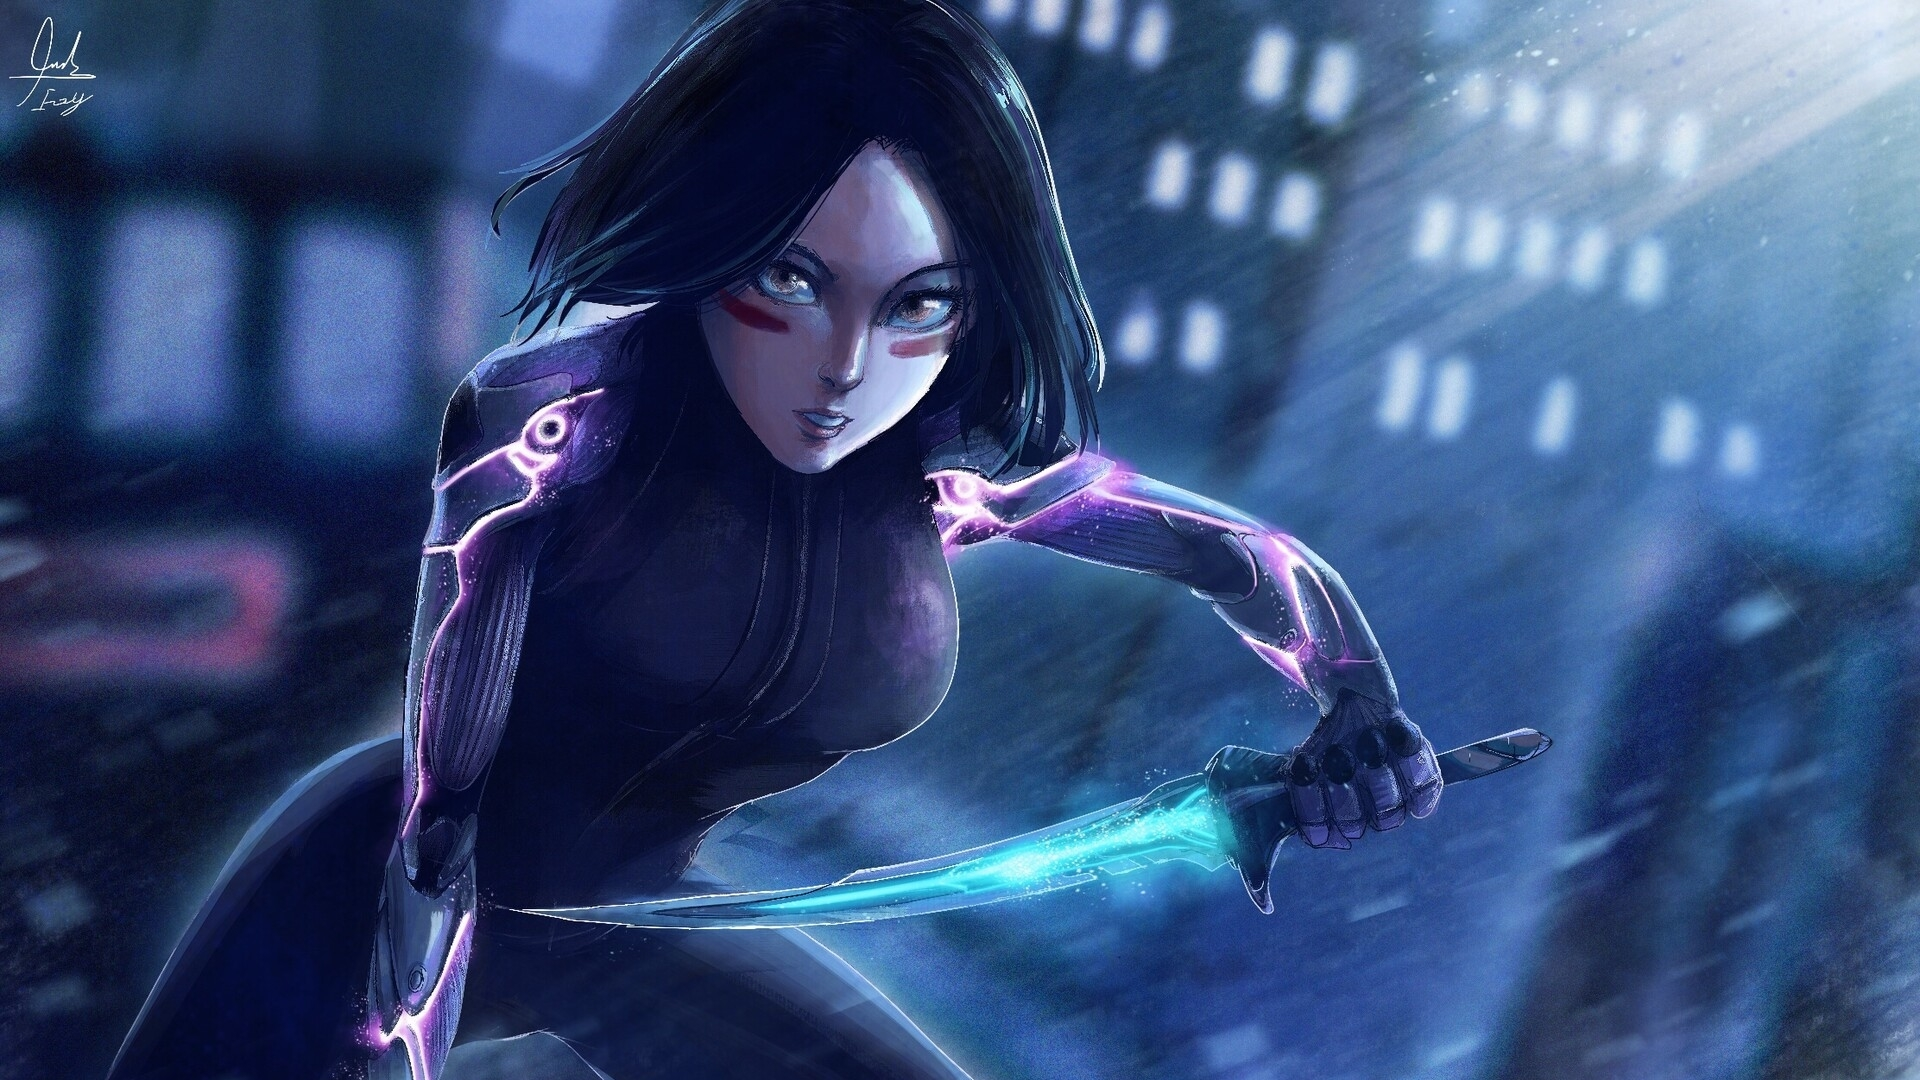 1920x1080 Alita Battle Angel Arts 1080p Laptop Full Hd Wallpaper Hd Movies 4k Wallpapers Images Photos And Background